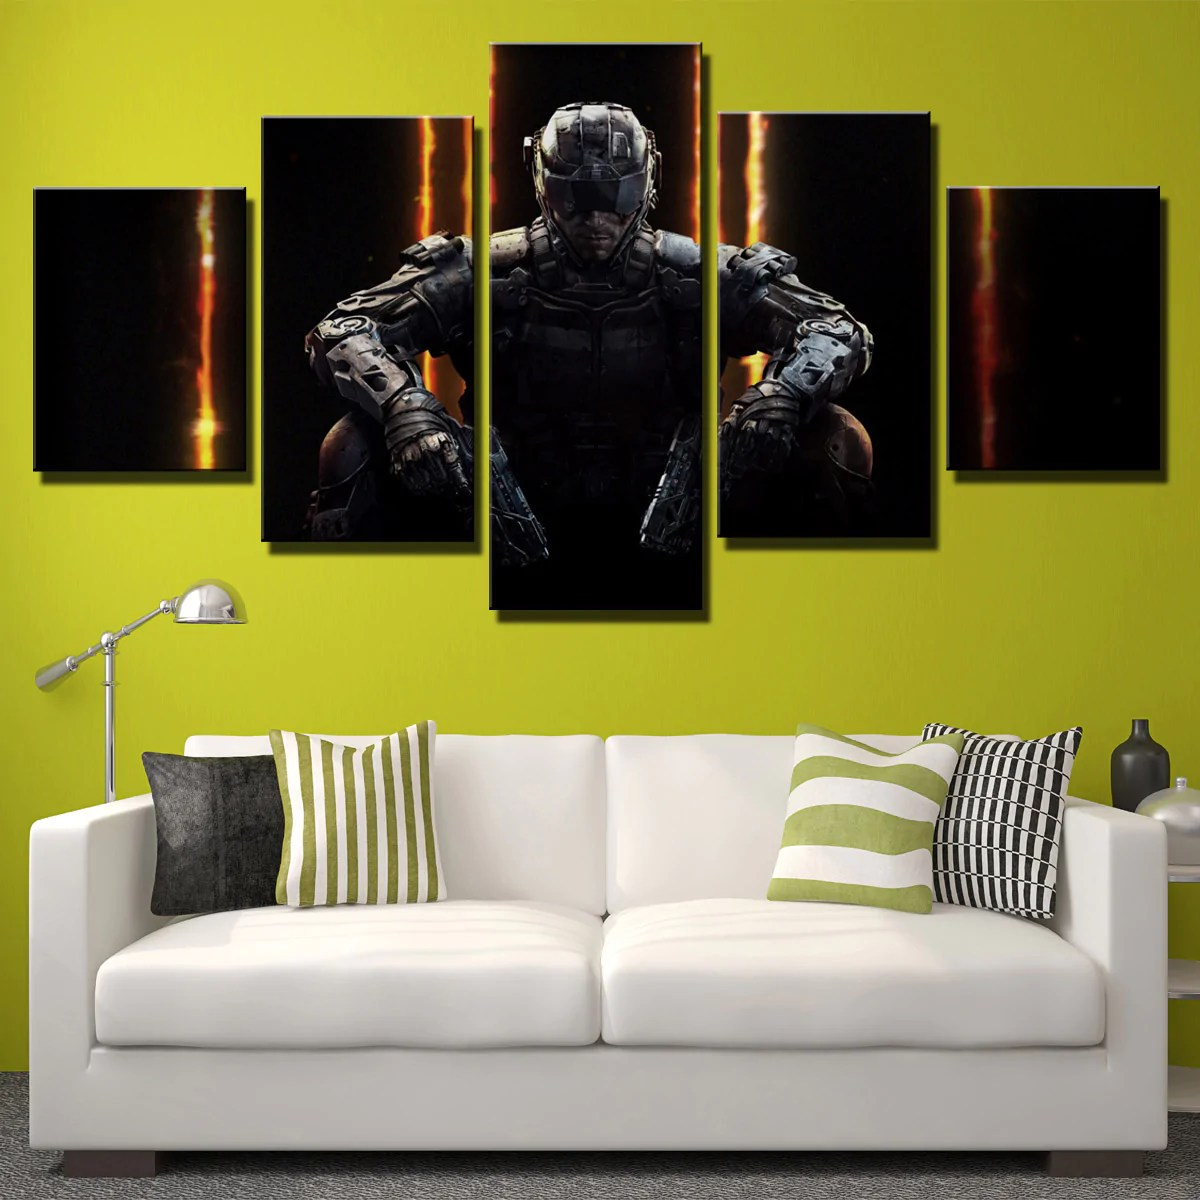 5 Piece Call of Duty Black Ops 3 Print Canvas Picture Wall Decor Art     5 Piece Call of Duty Black Ops 3 Print Canvas Picture Wall Decor Art 204